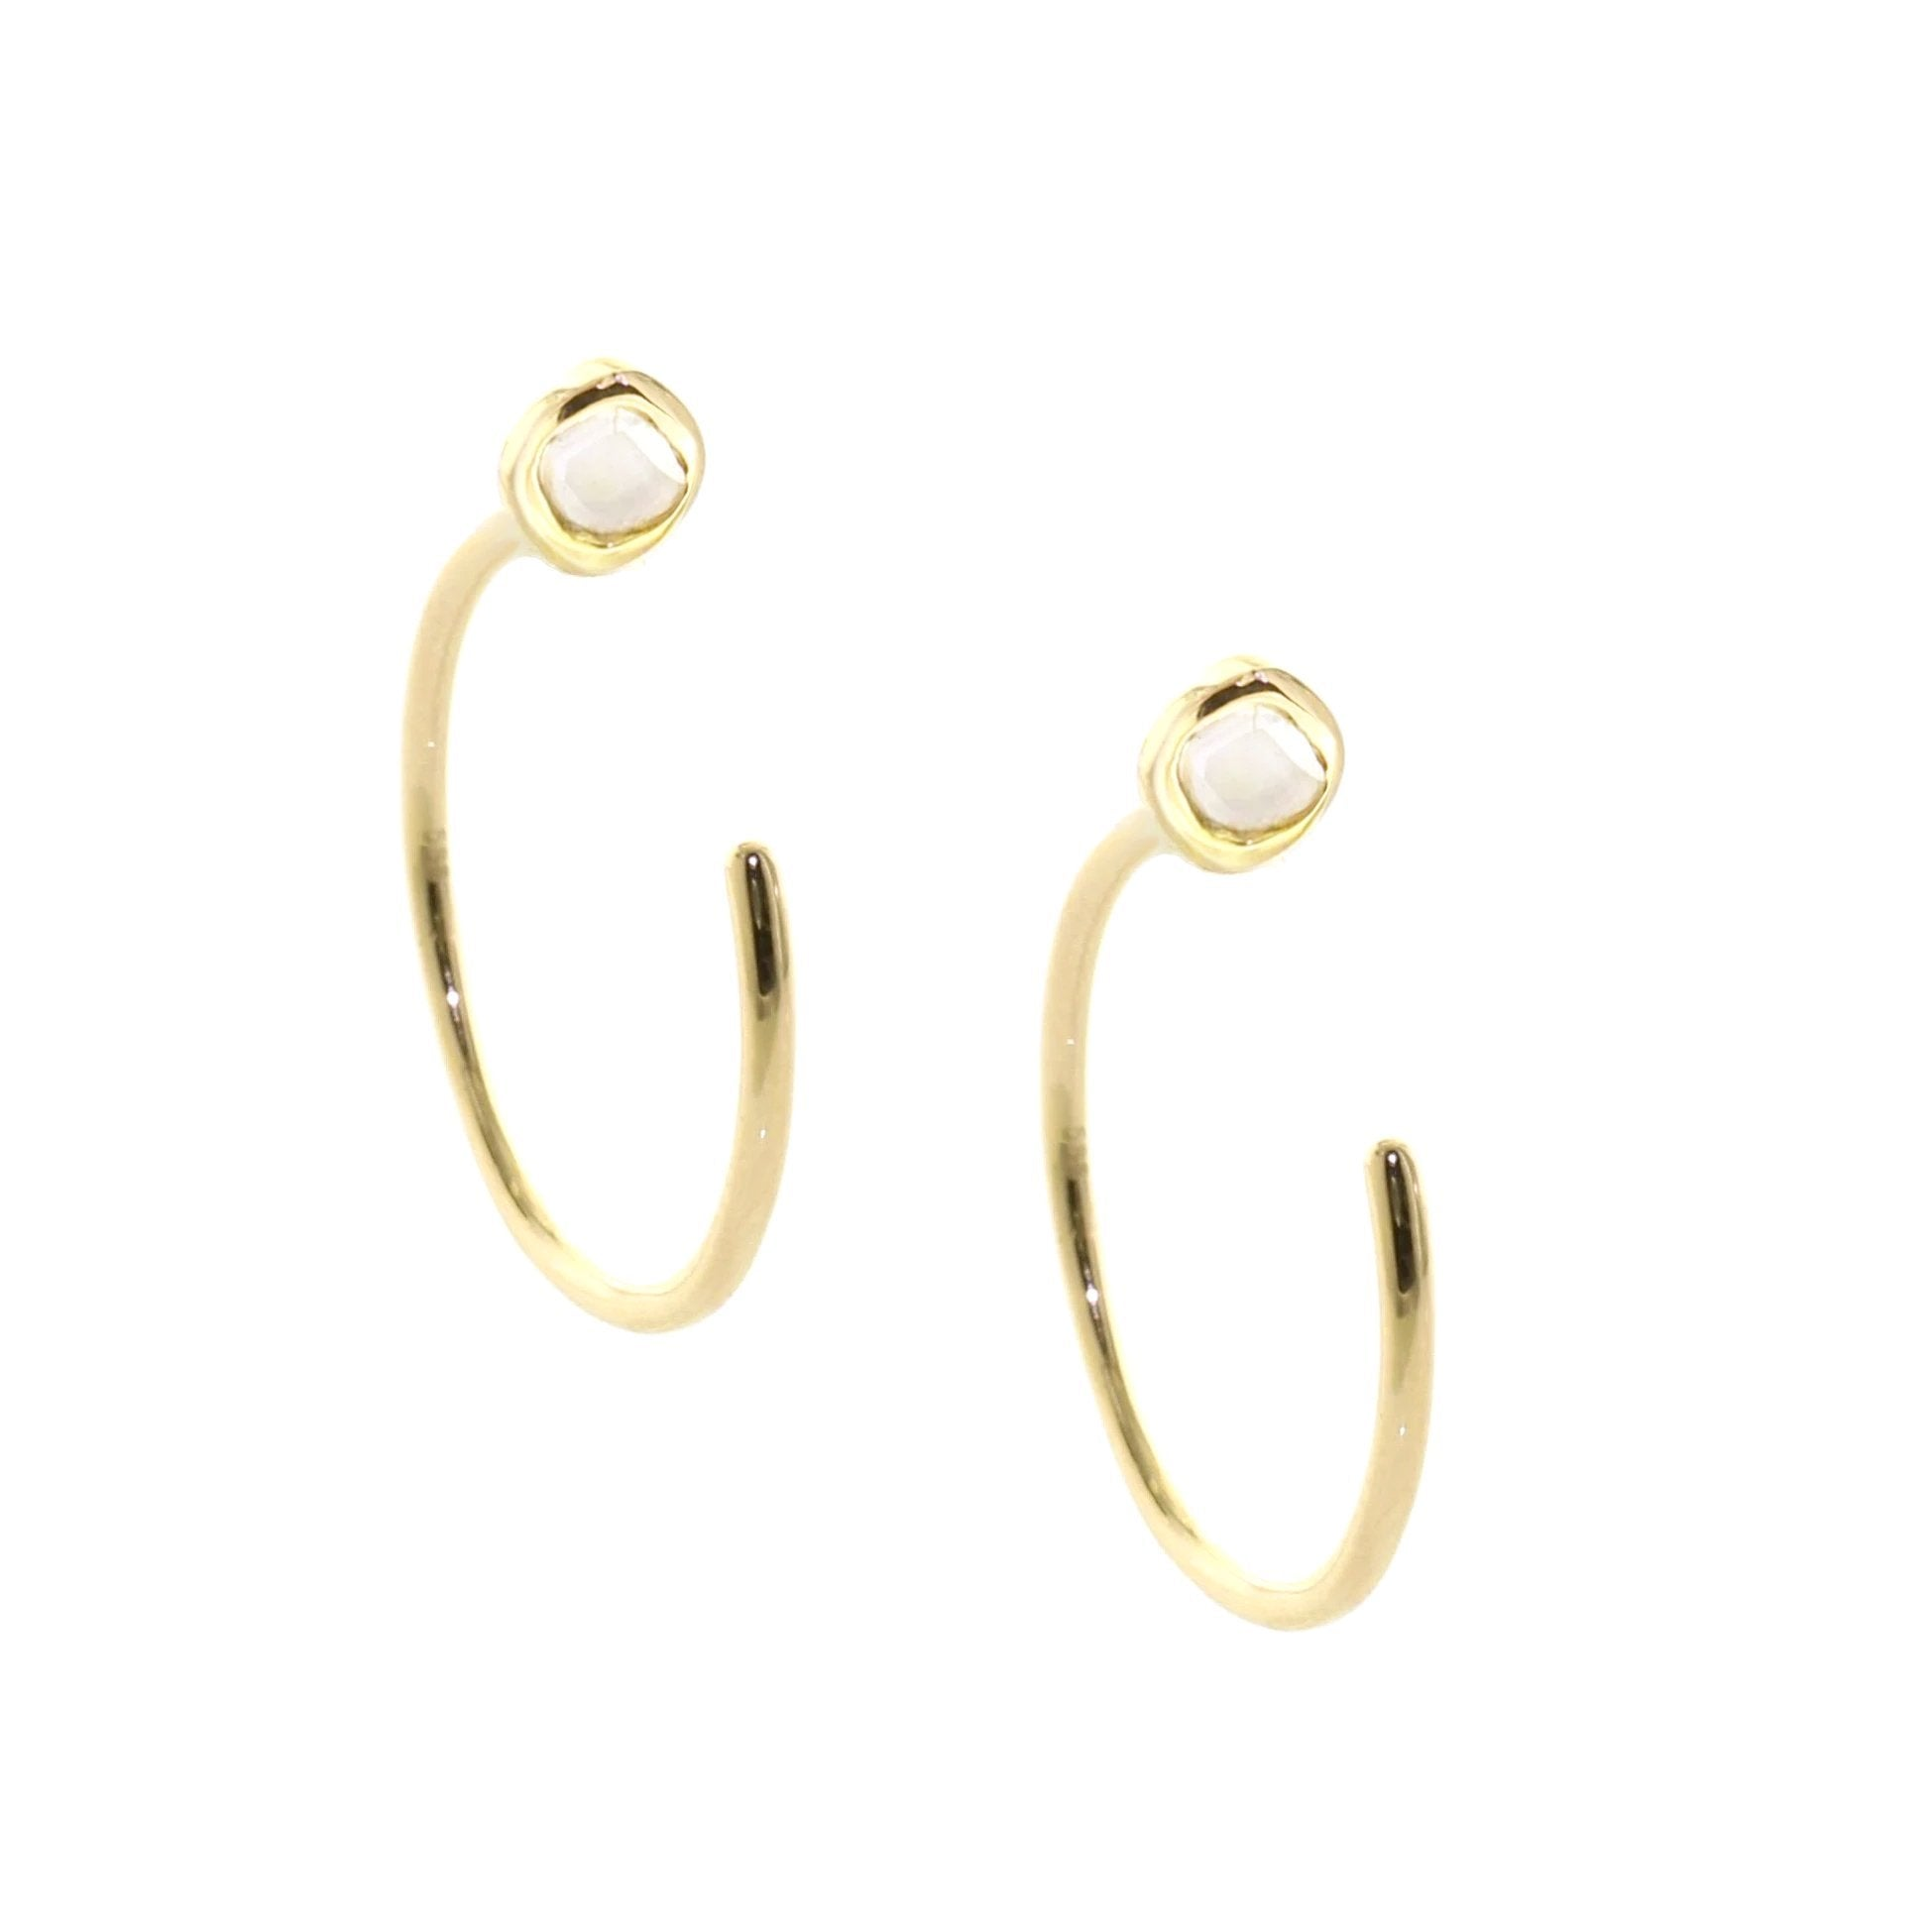 True Sliced Diamond Reverse Hoop Earrings Gold - SO PRETTY CARA COTTER